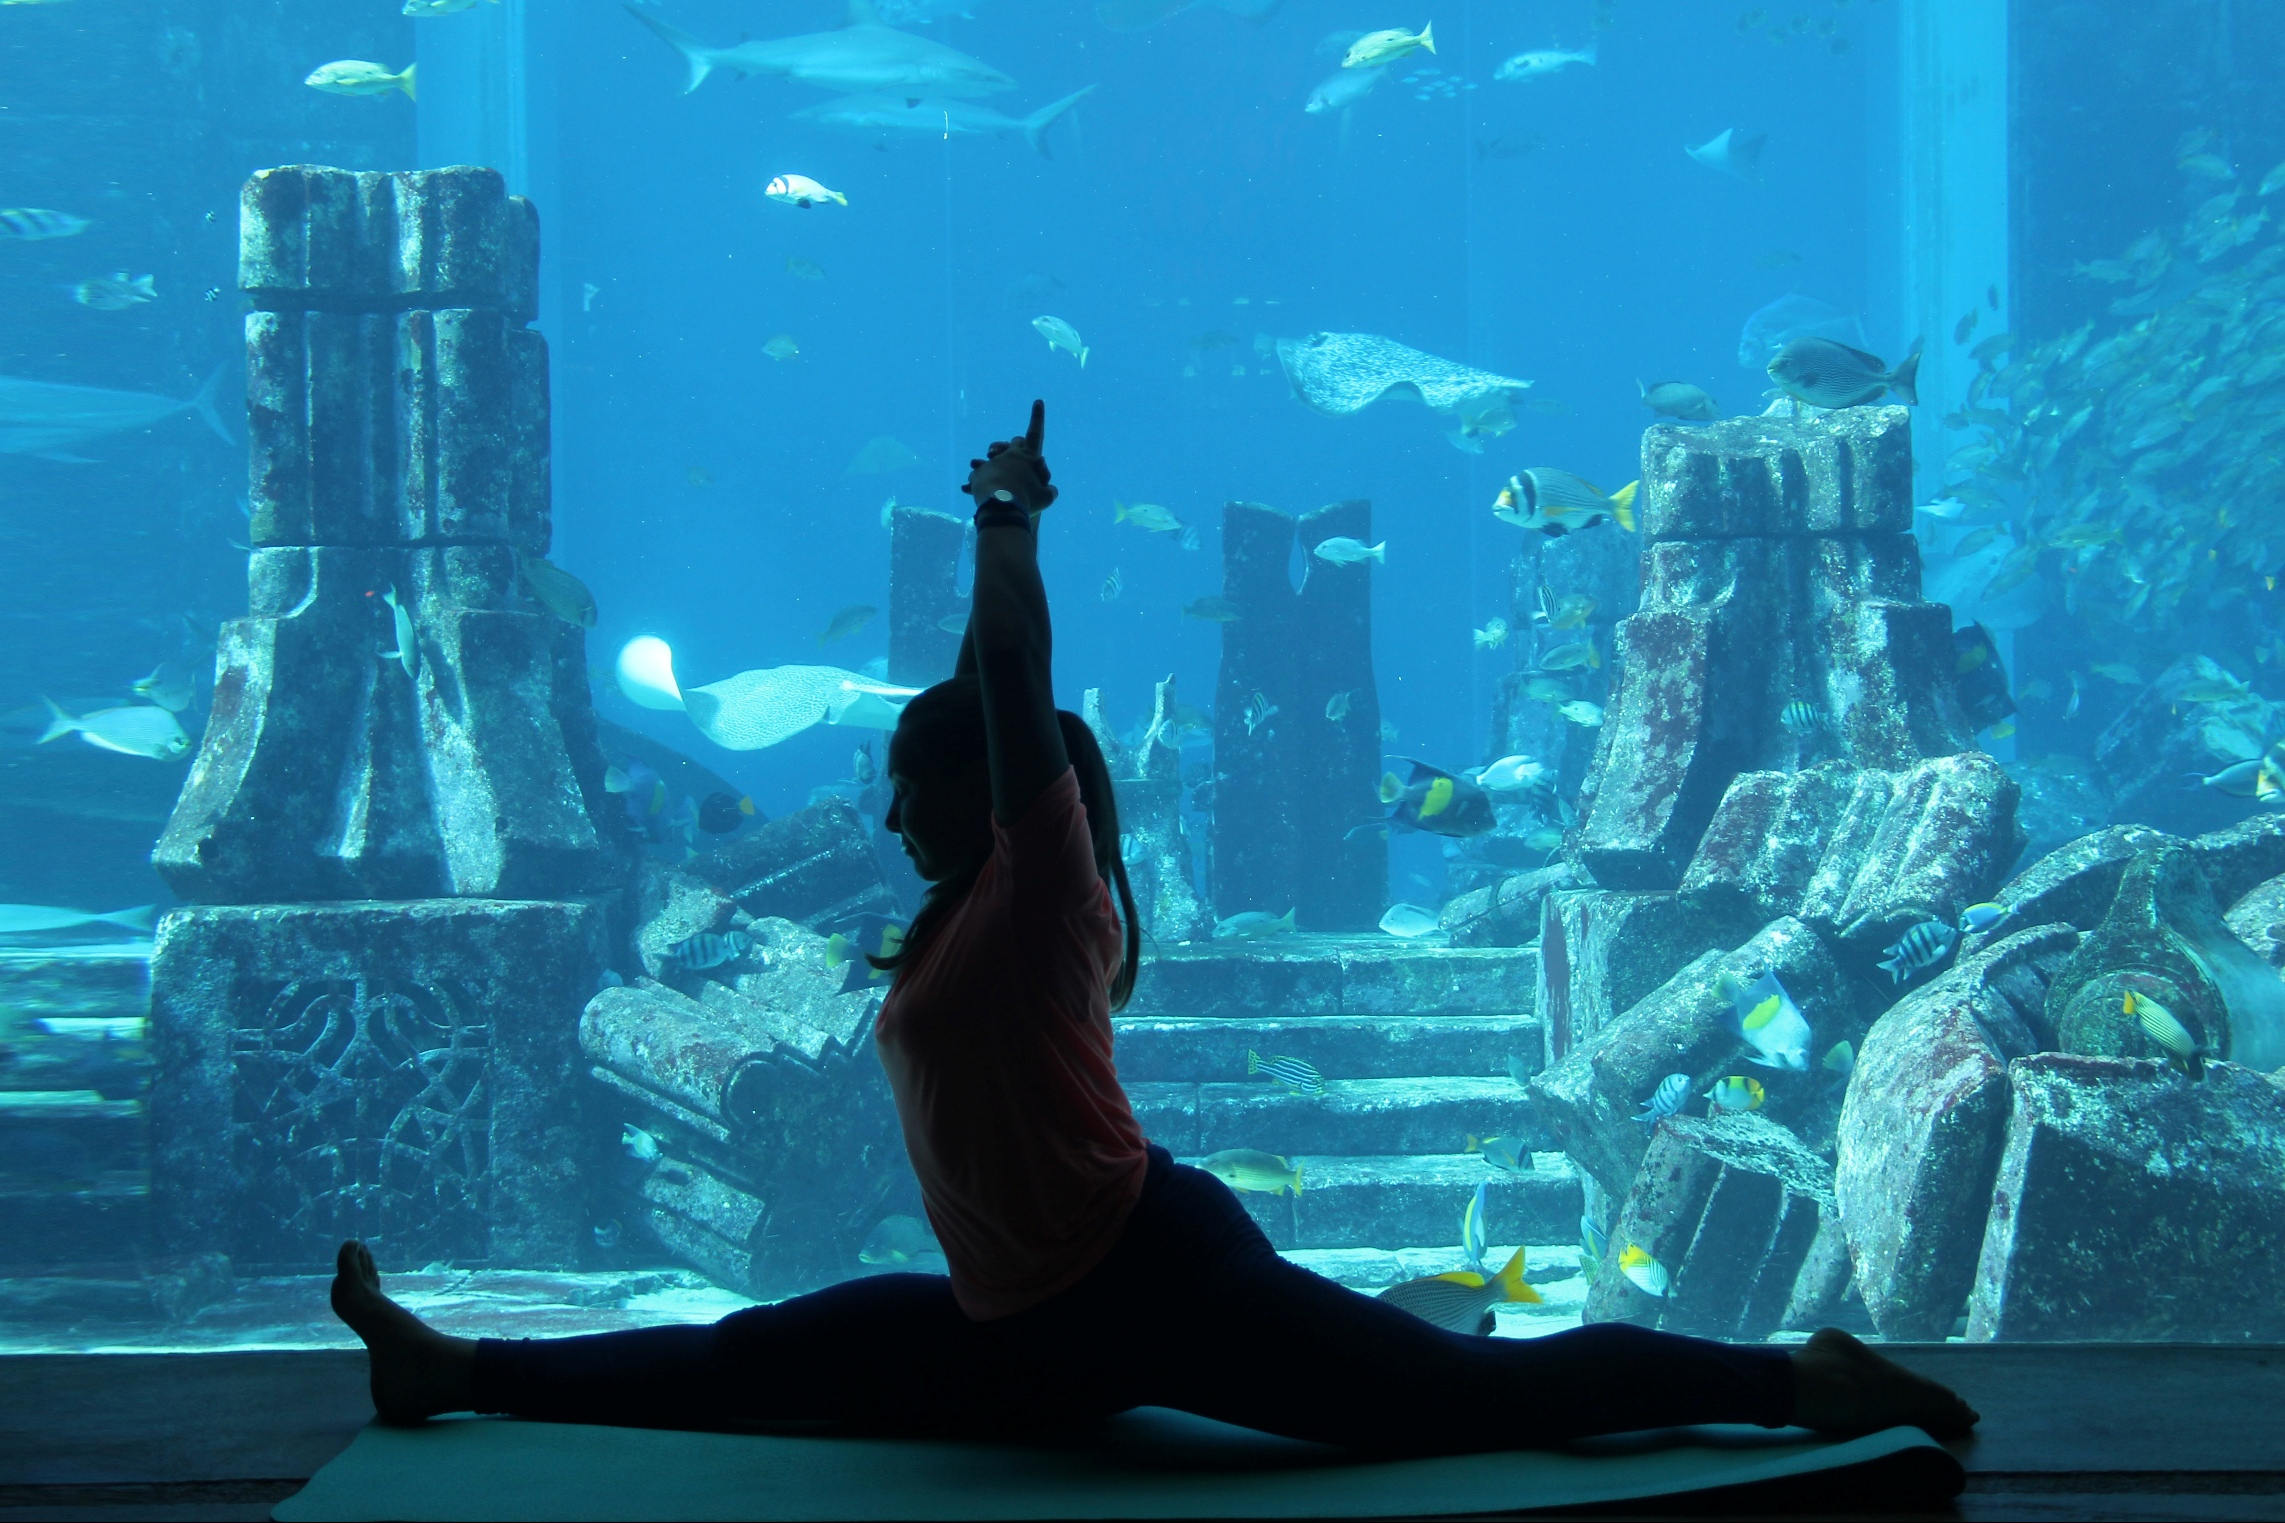 Atlantis, the Palm Announce the Biggest Underwater Yoga Class in Dubai in Celebration of the International Day of Yoga